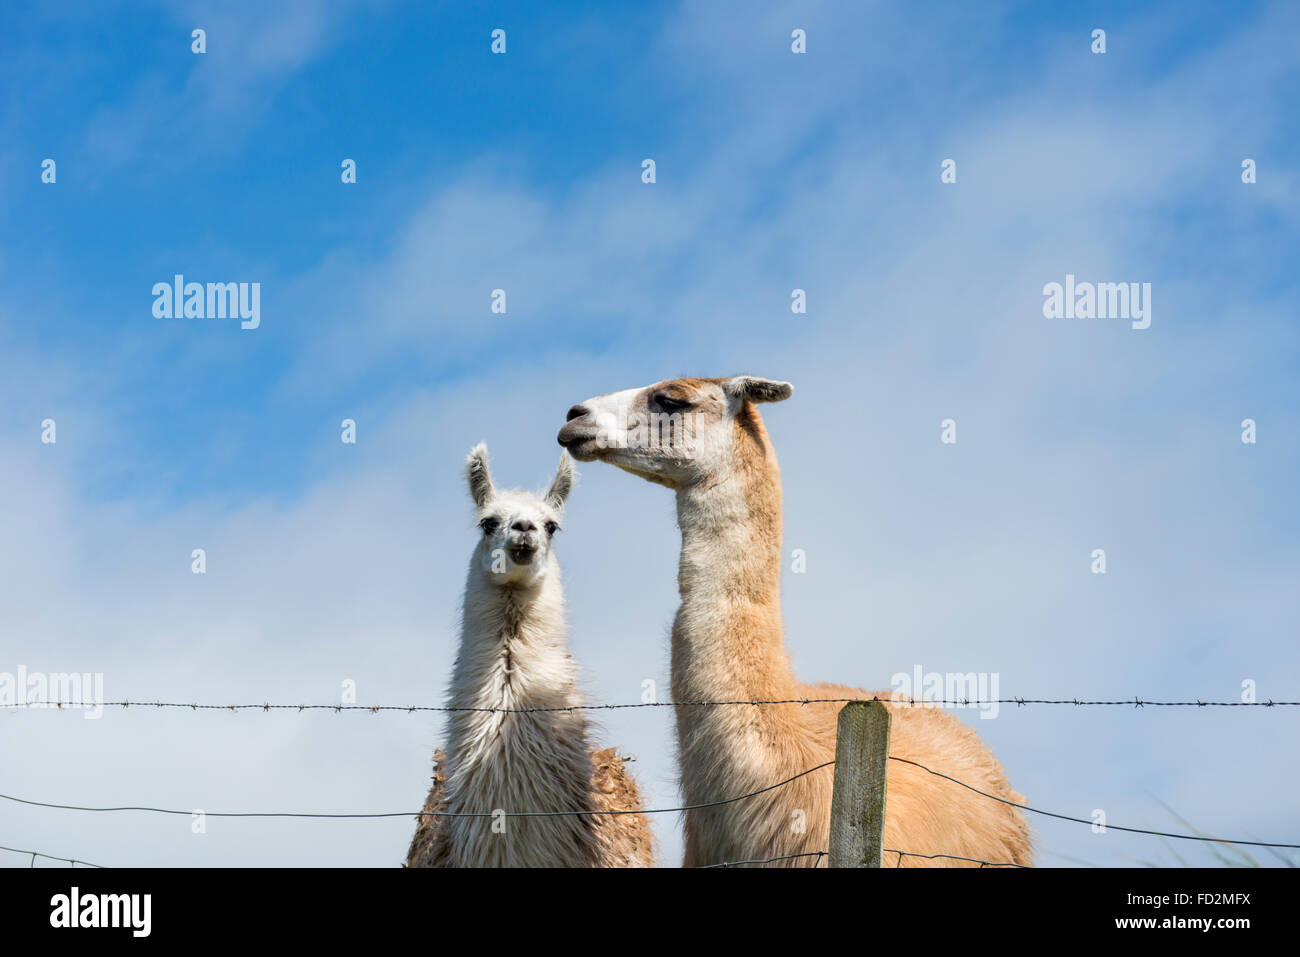 Two llamas (Lama glama) in a field on a farm in the UK - Stock Image